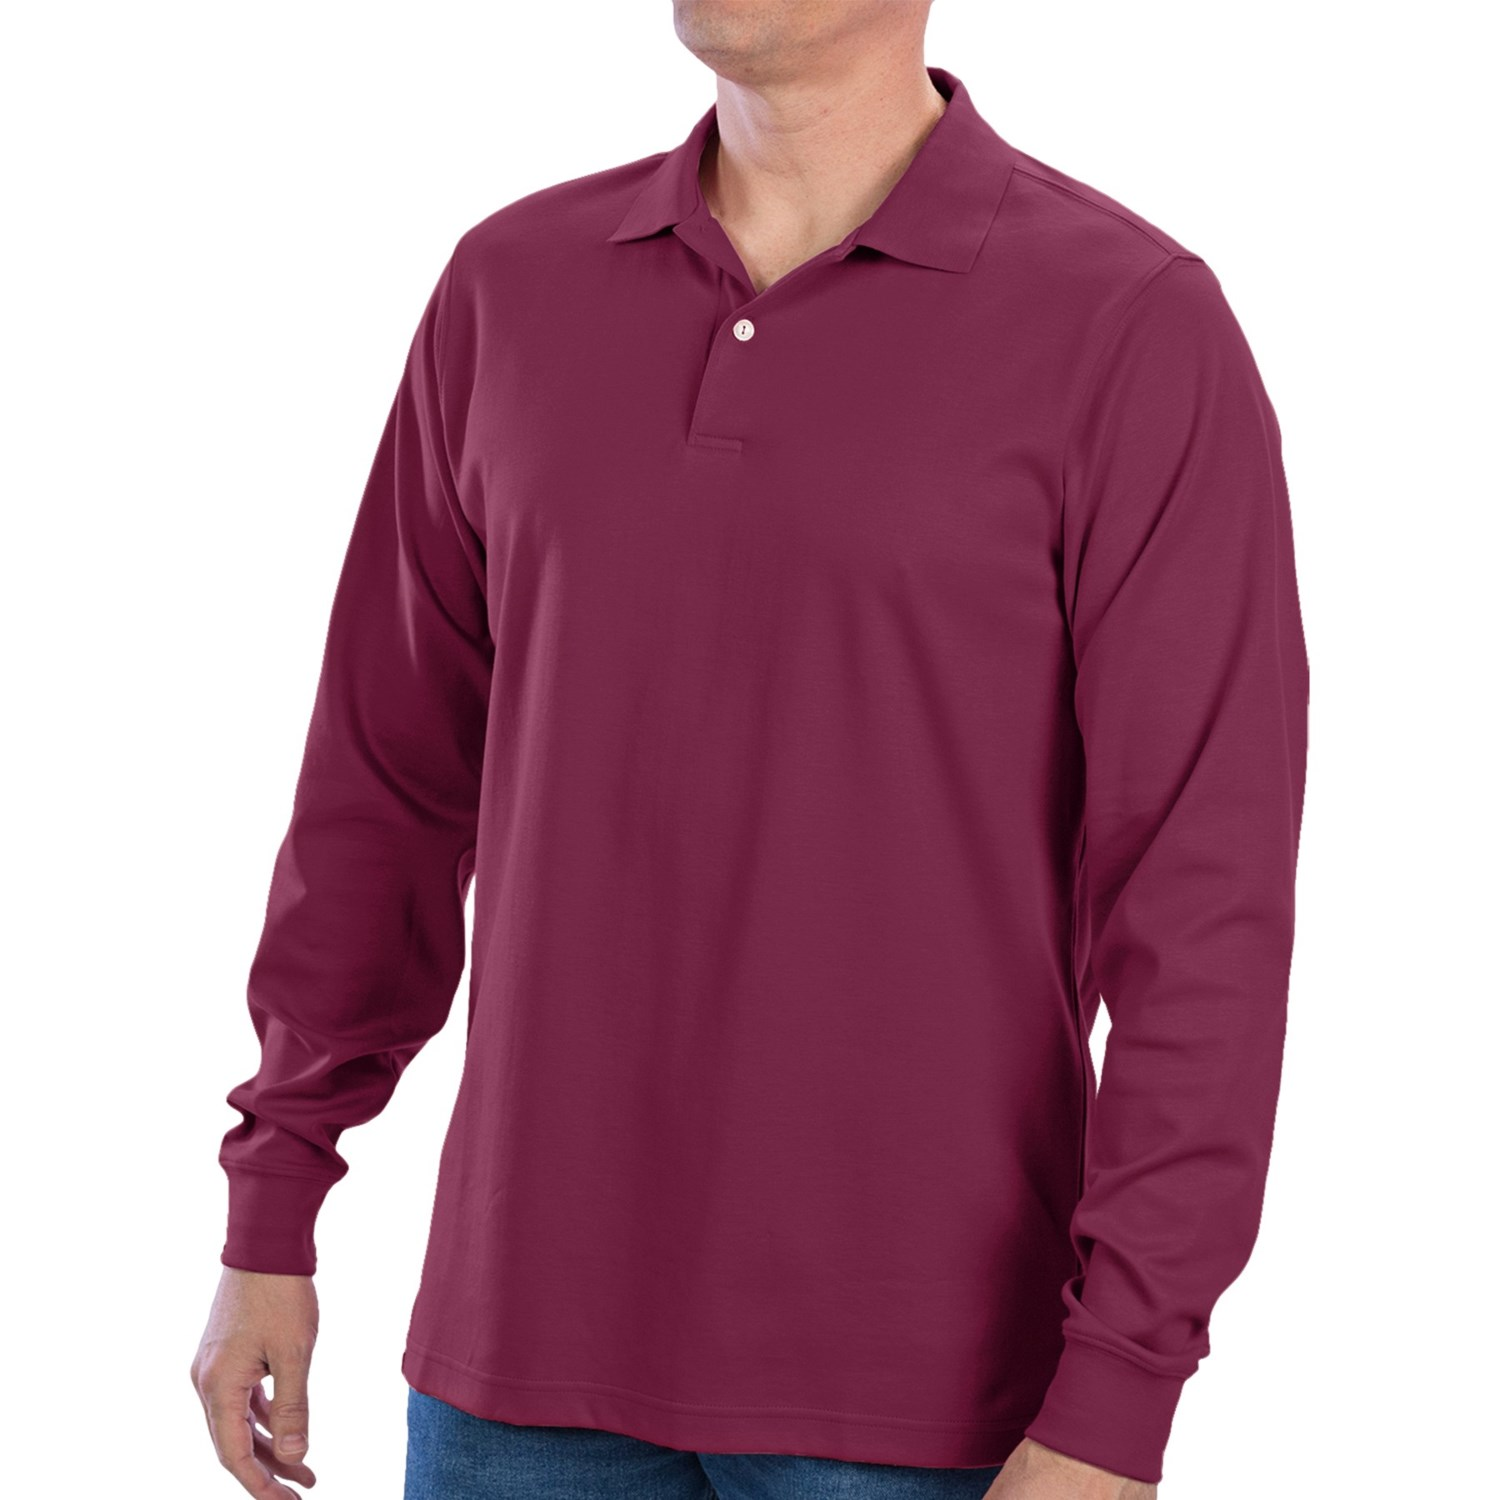 Long Sleeve Cotton Polo Shirts For Mens